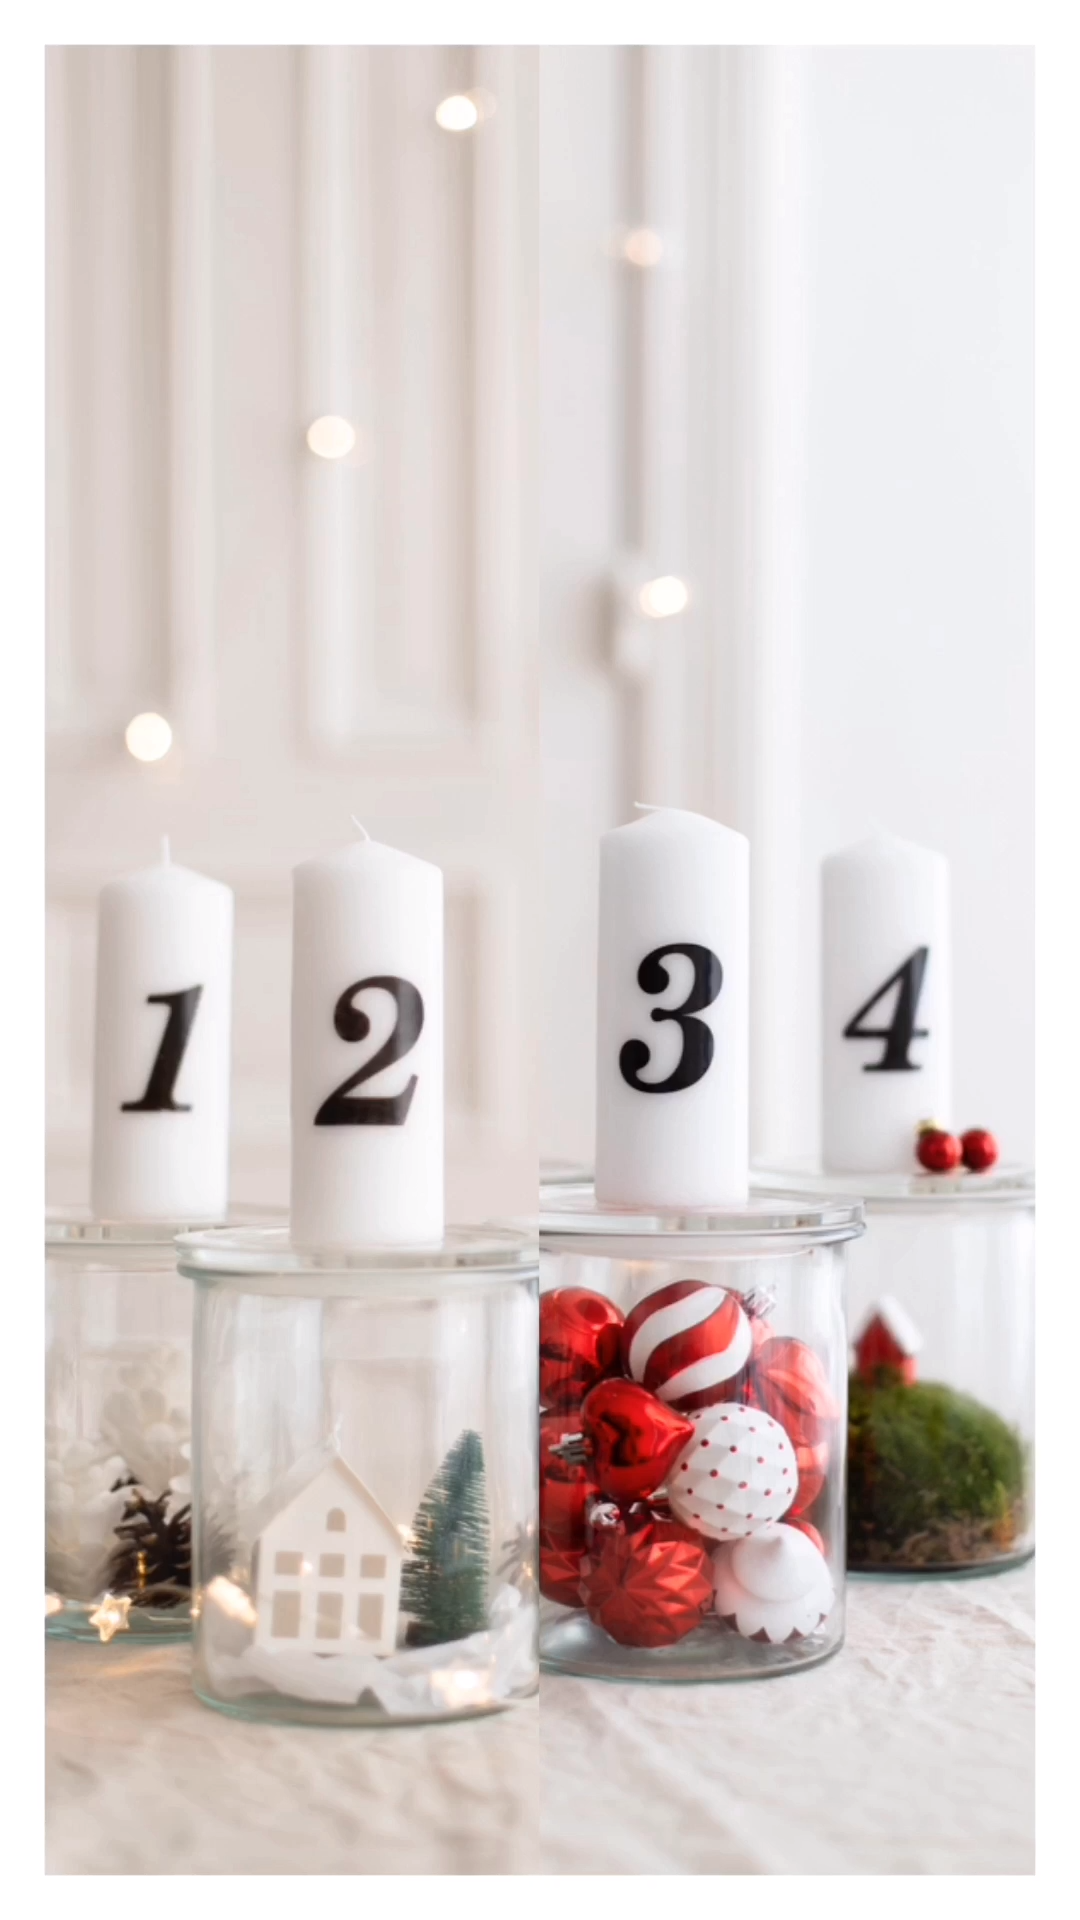 DIY Advent glasses – one idea, two styles Artificial fir tree as Christmas decor…